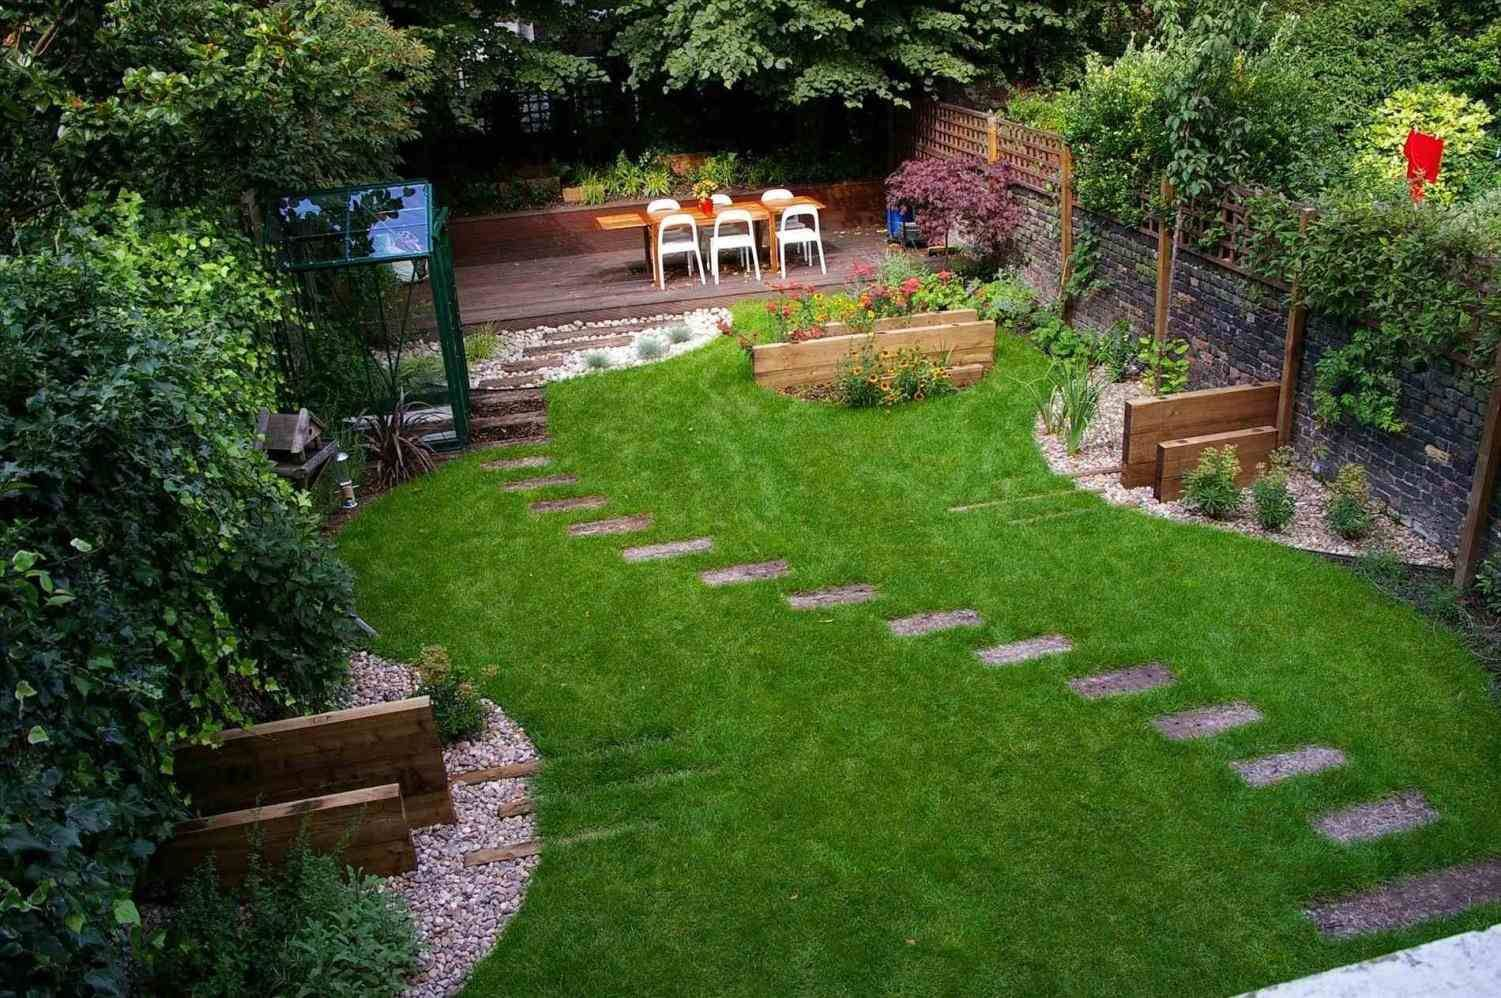 Uphill Landscaping Ideas | Backyard garden design, Small ... on Uphill Backyard Ideas  id=89156